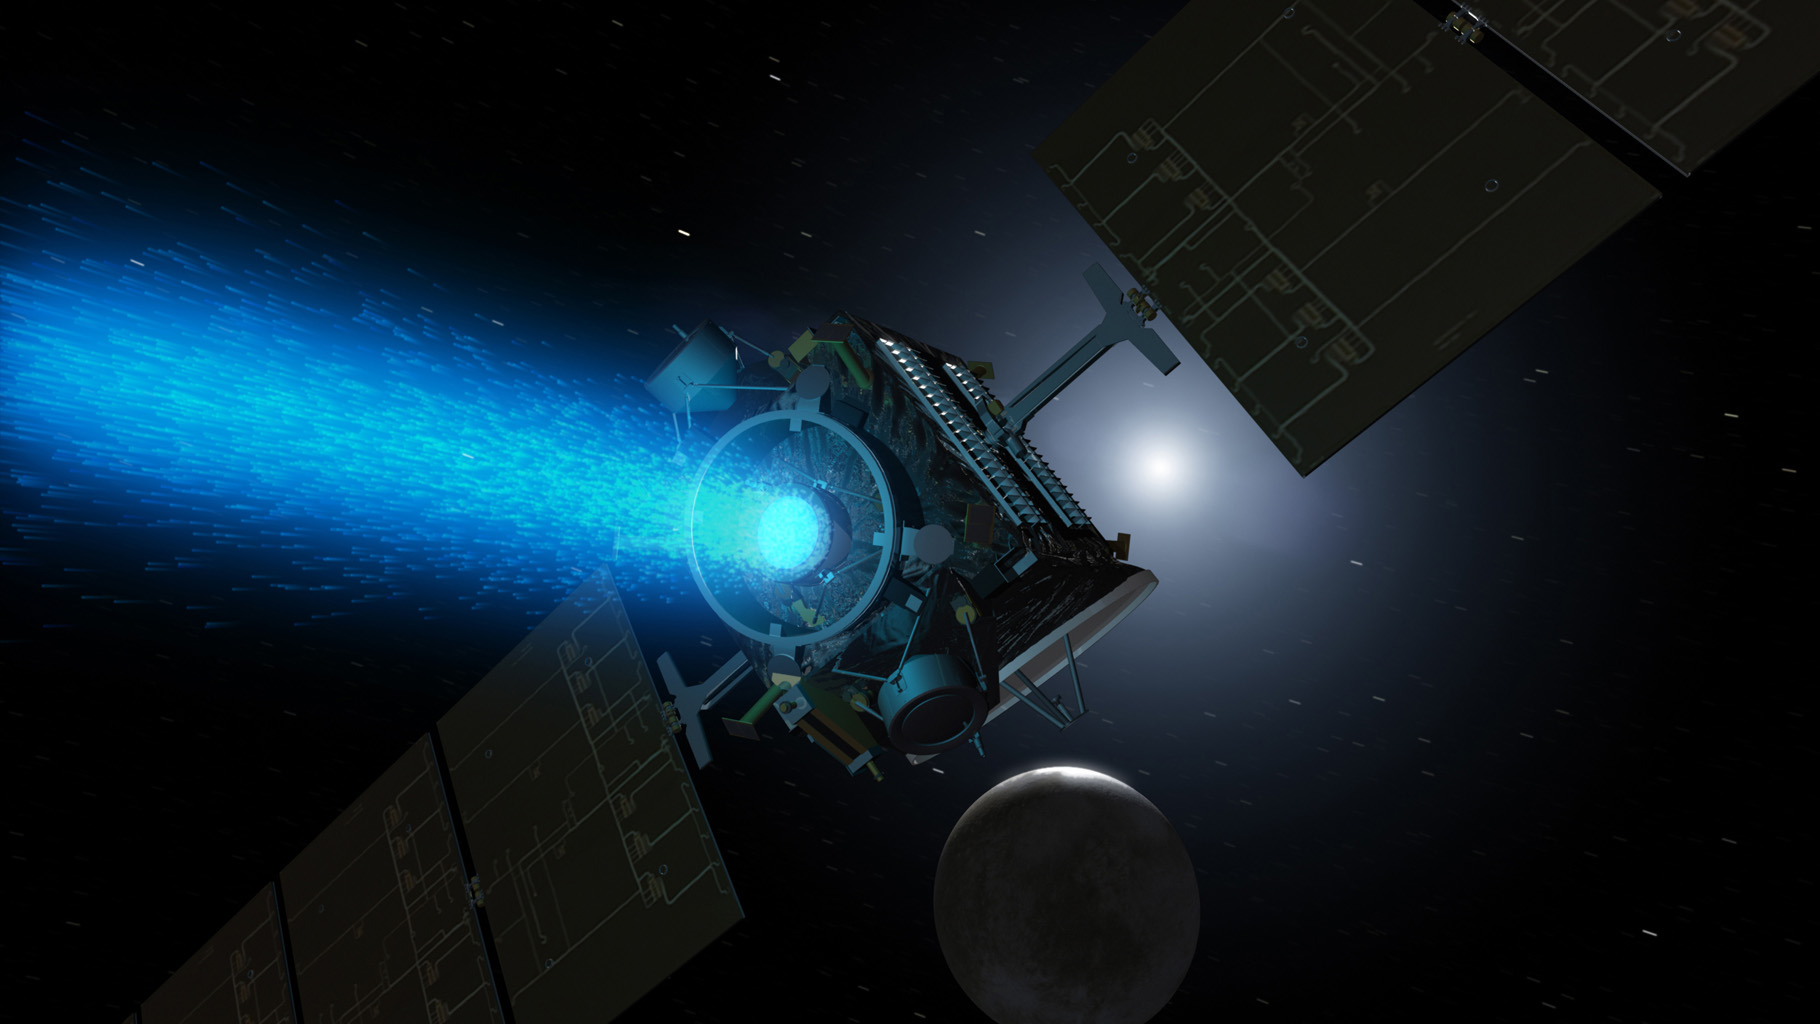 This artist's concept shows NASA's Dawn spacecraft arriving at the dwarf planet Ceres. Dawn travels through space using a technology called ion propulsion, with ions glowing with blue light are accelerated out of an engine, giving the spacecraft thrust.